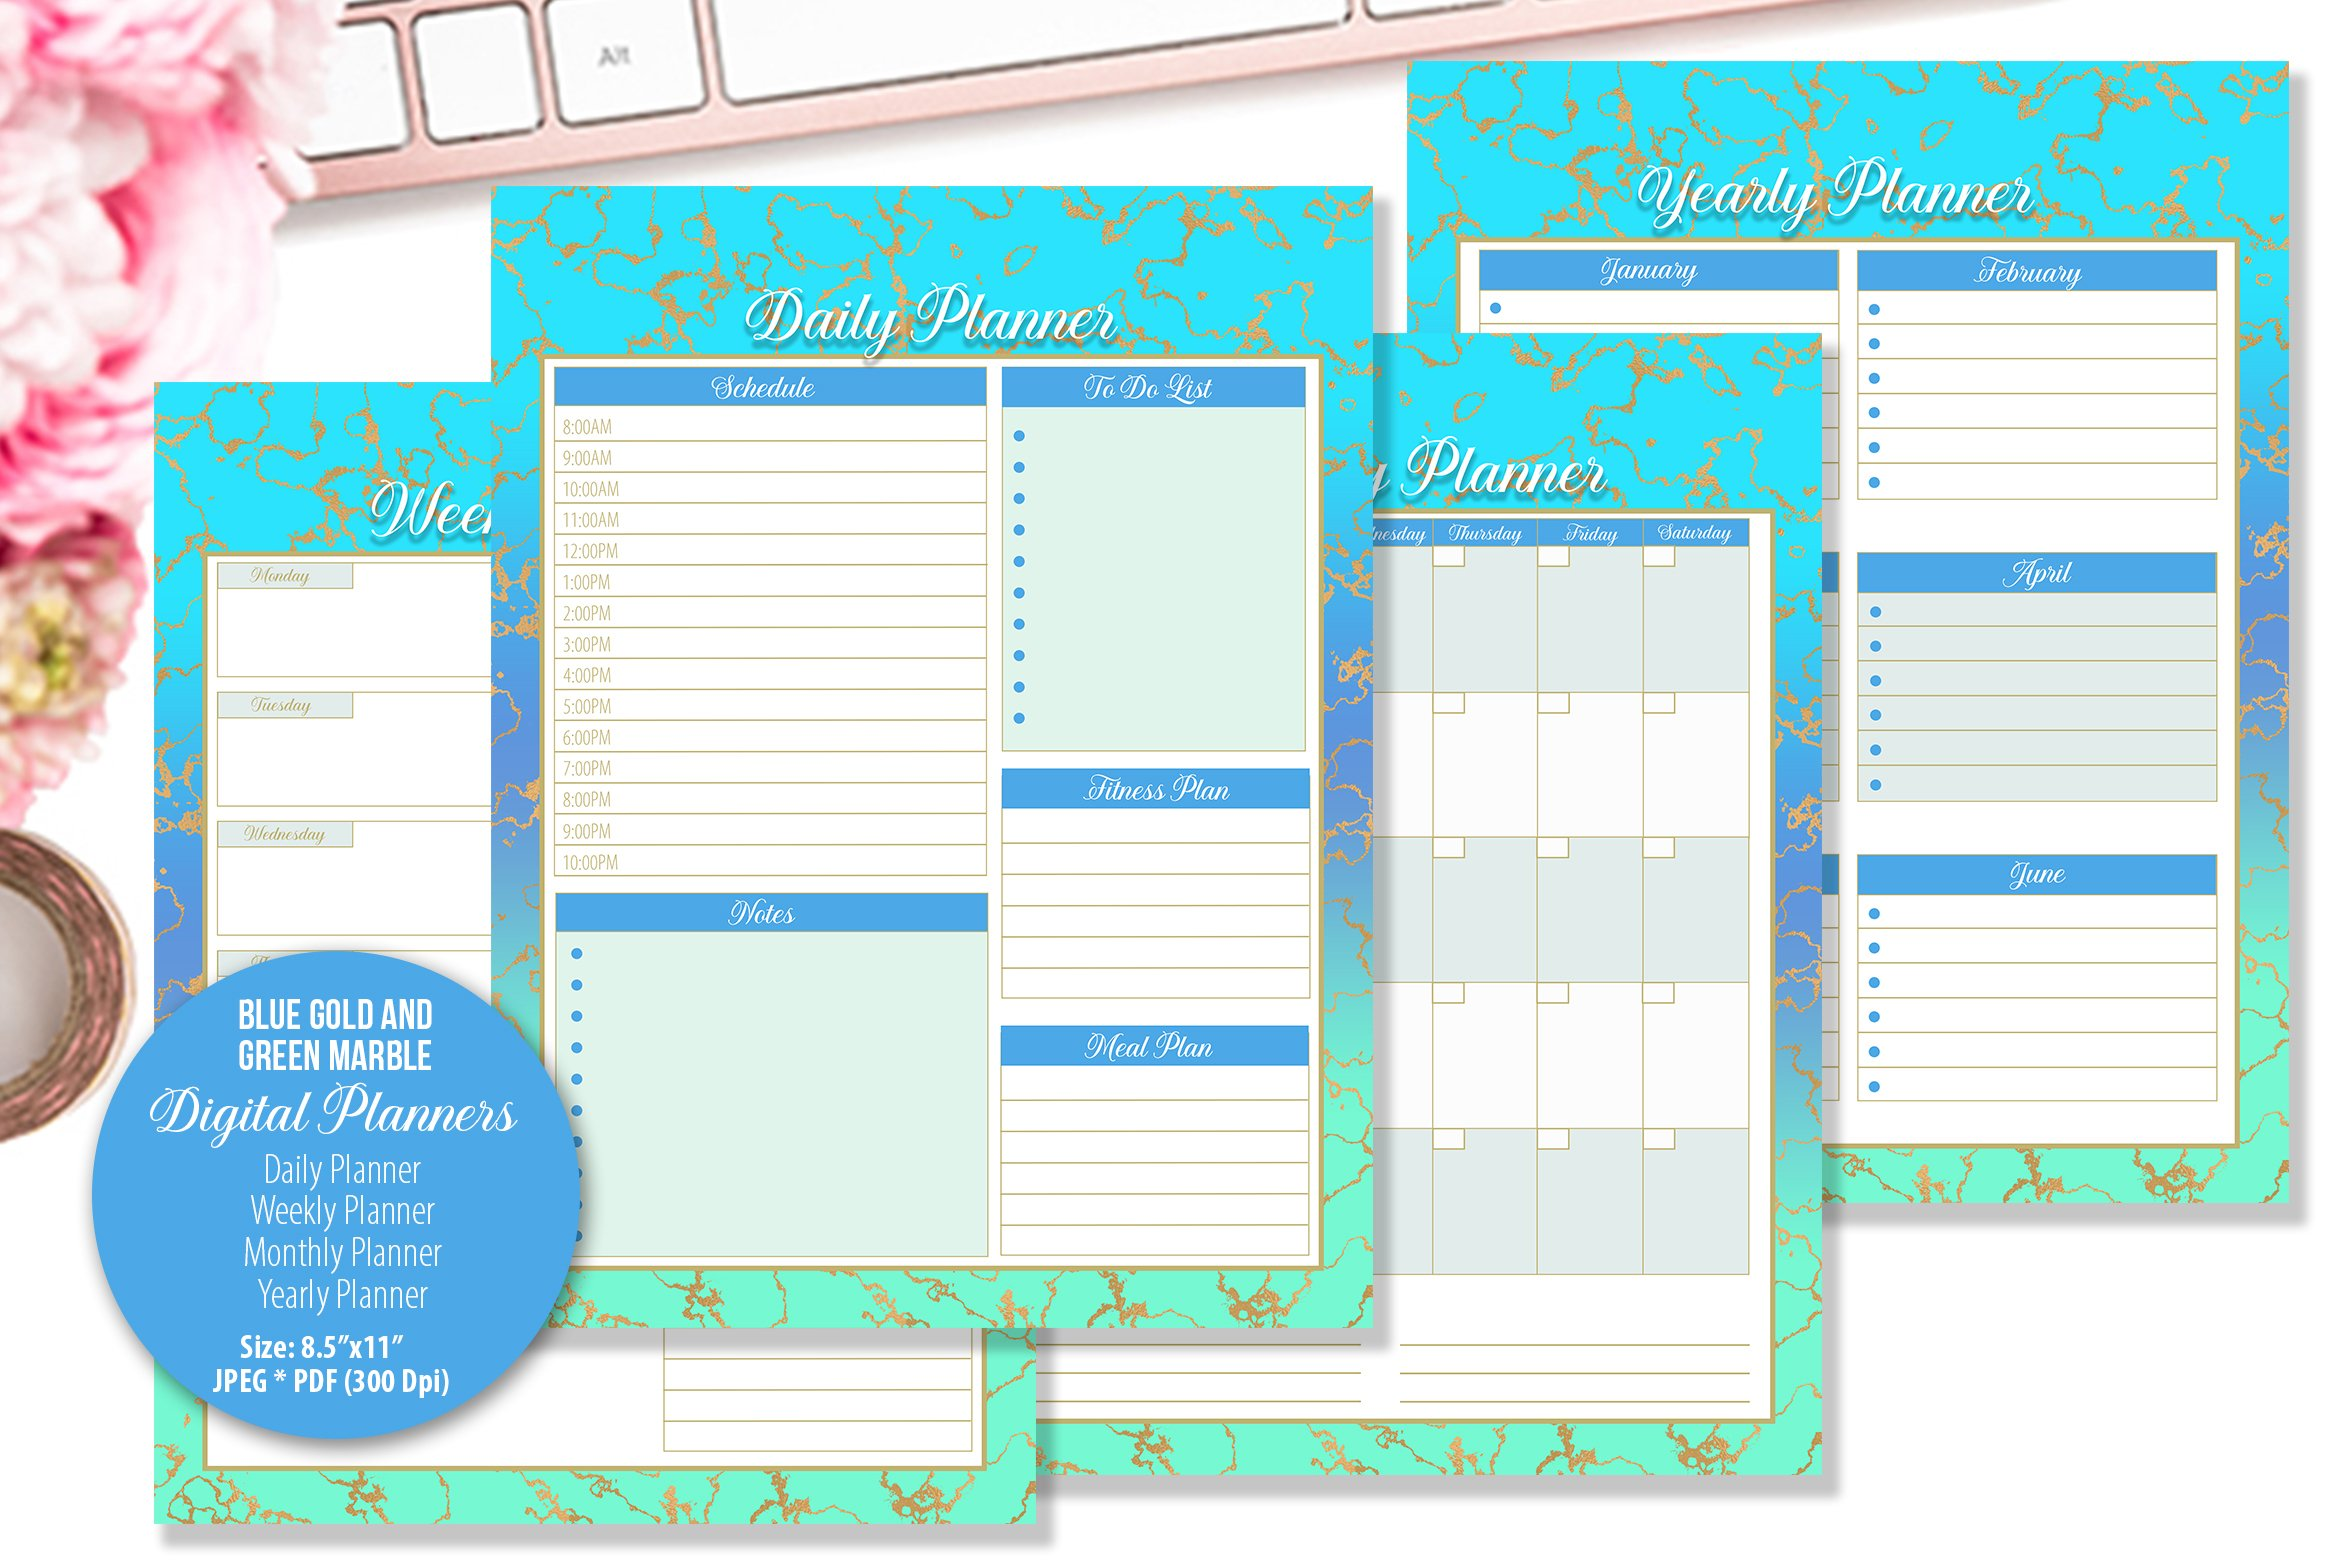 Blue Gold and Green Marble Digital Planner example image 1